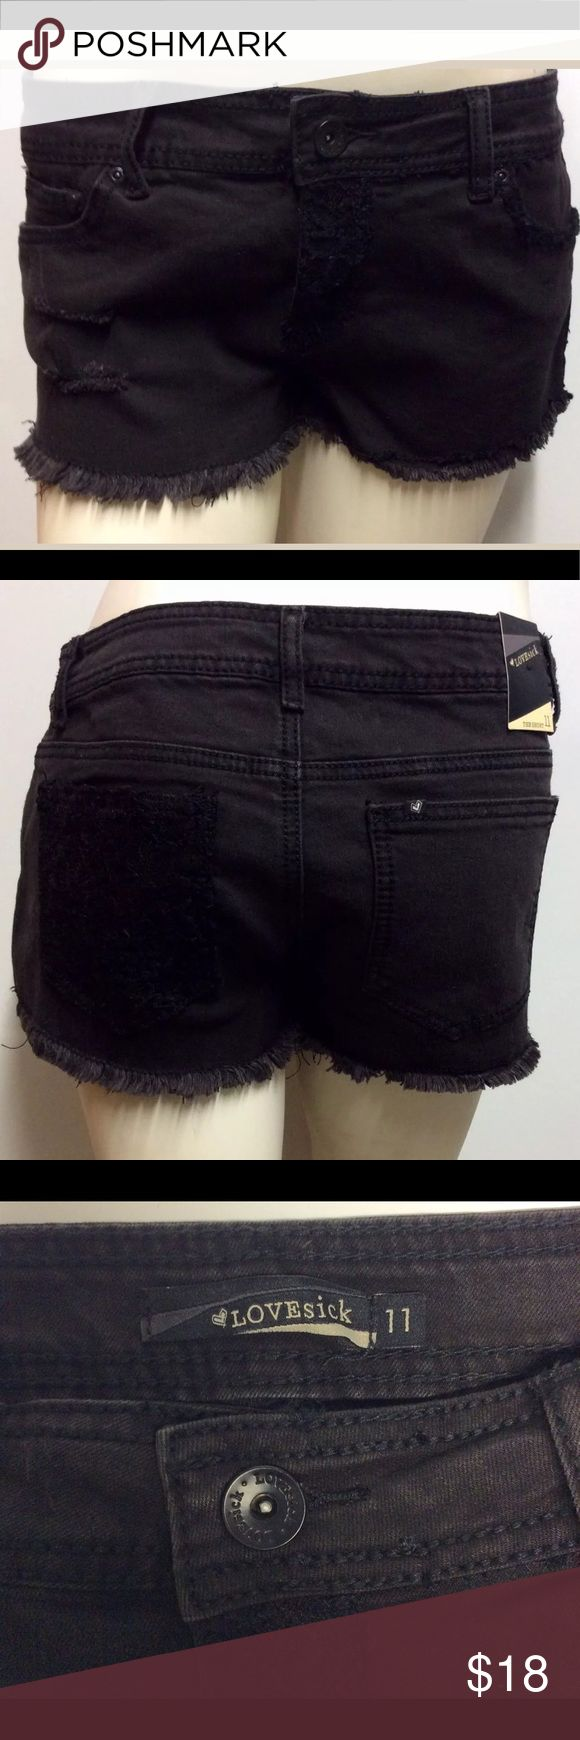 """♥️New Lovesick Shorts Crochet Lace 11 Juniors Size: 11 Juniors  Lace and Crochet design  Color: Black  Waist: 32""""  Rise: 8""""  Length from Waist to bottom fringes 9-9.5"""" in front  Length from Waist to bottom fringes 10.5-11"""" in back  Closures: zip and button  Pockets: 5  Material: 67% Cotton, 37% Polyester, 1% Spandex  Condition: The shorts are new with one tag.   Thank you for viewing this listing! Lovesick Shorts Jean Shorts"""